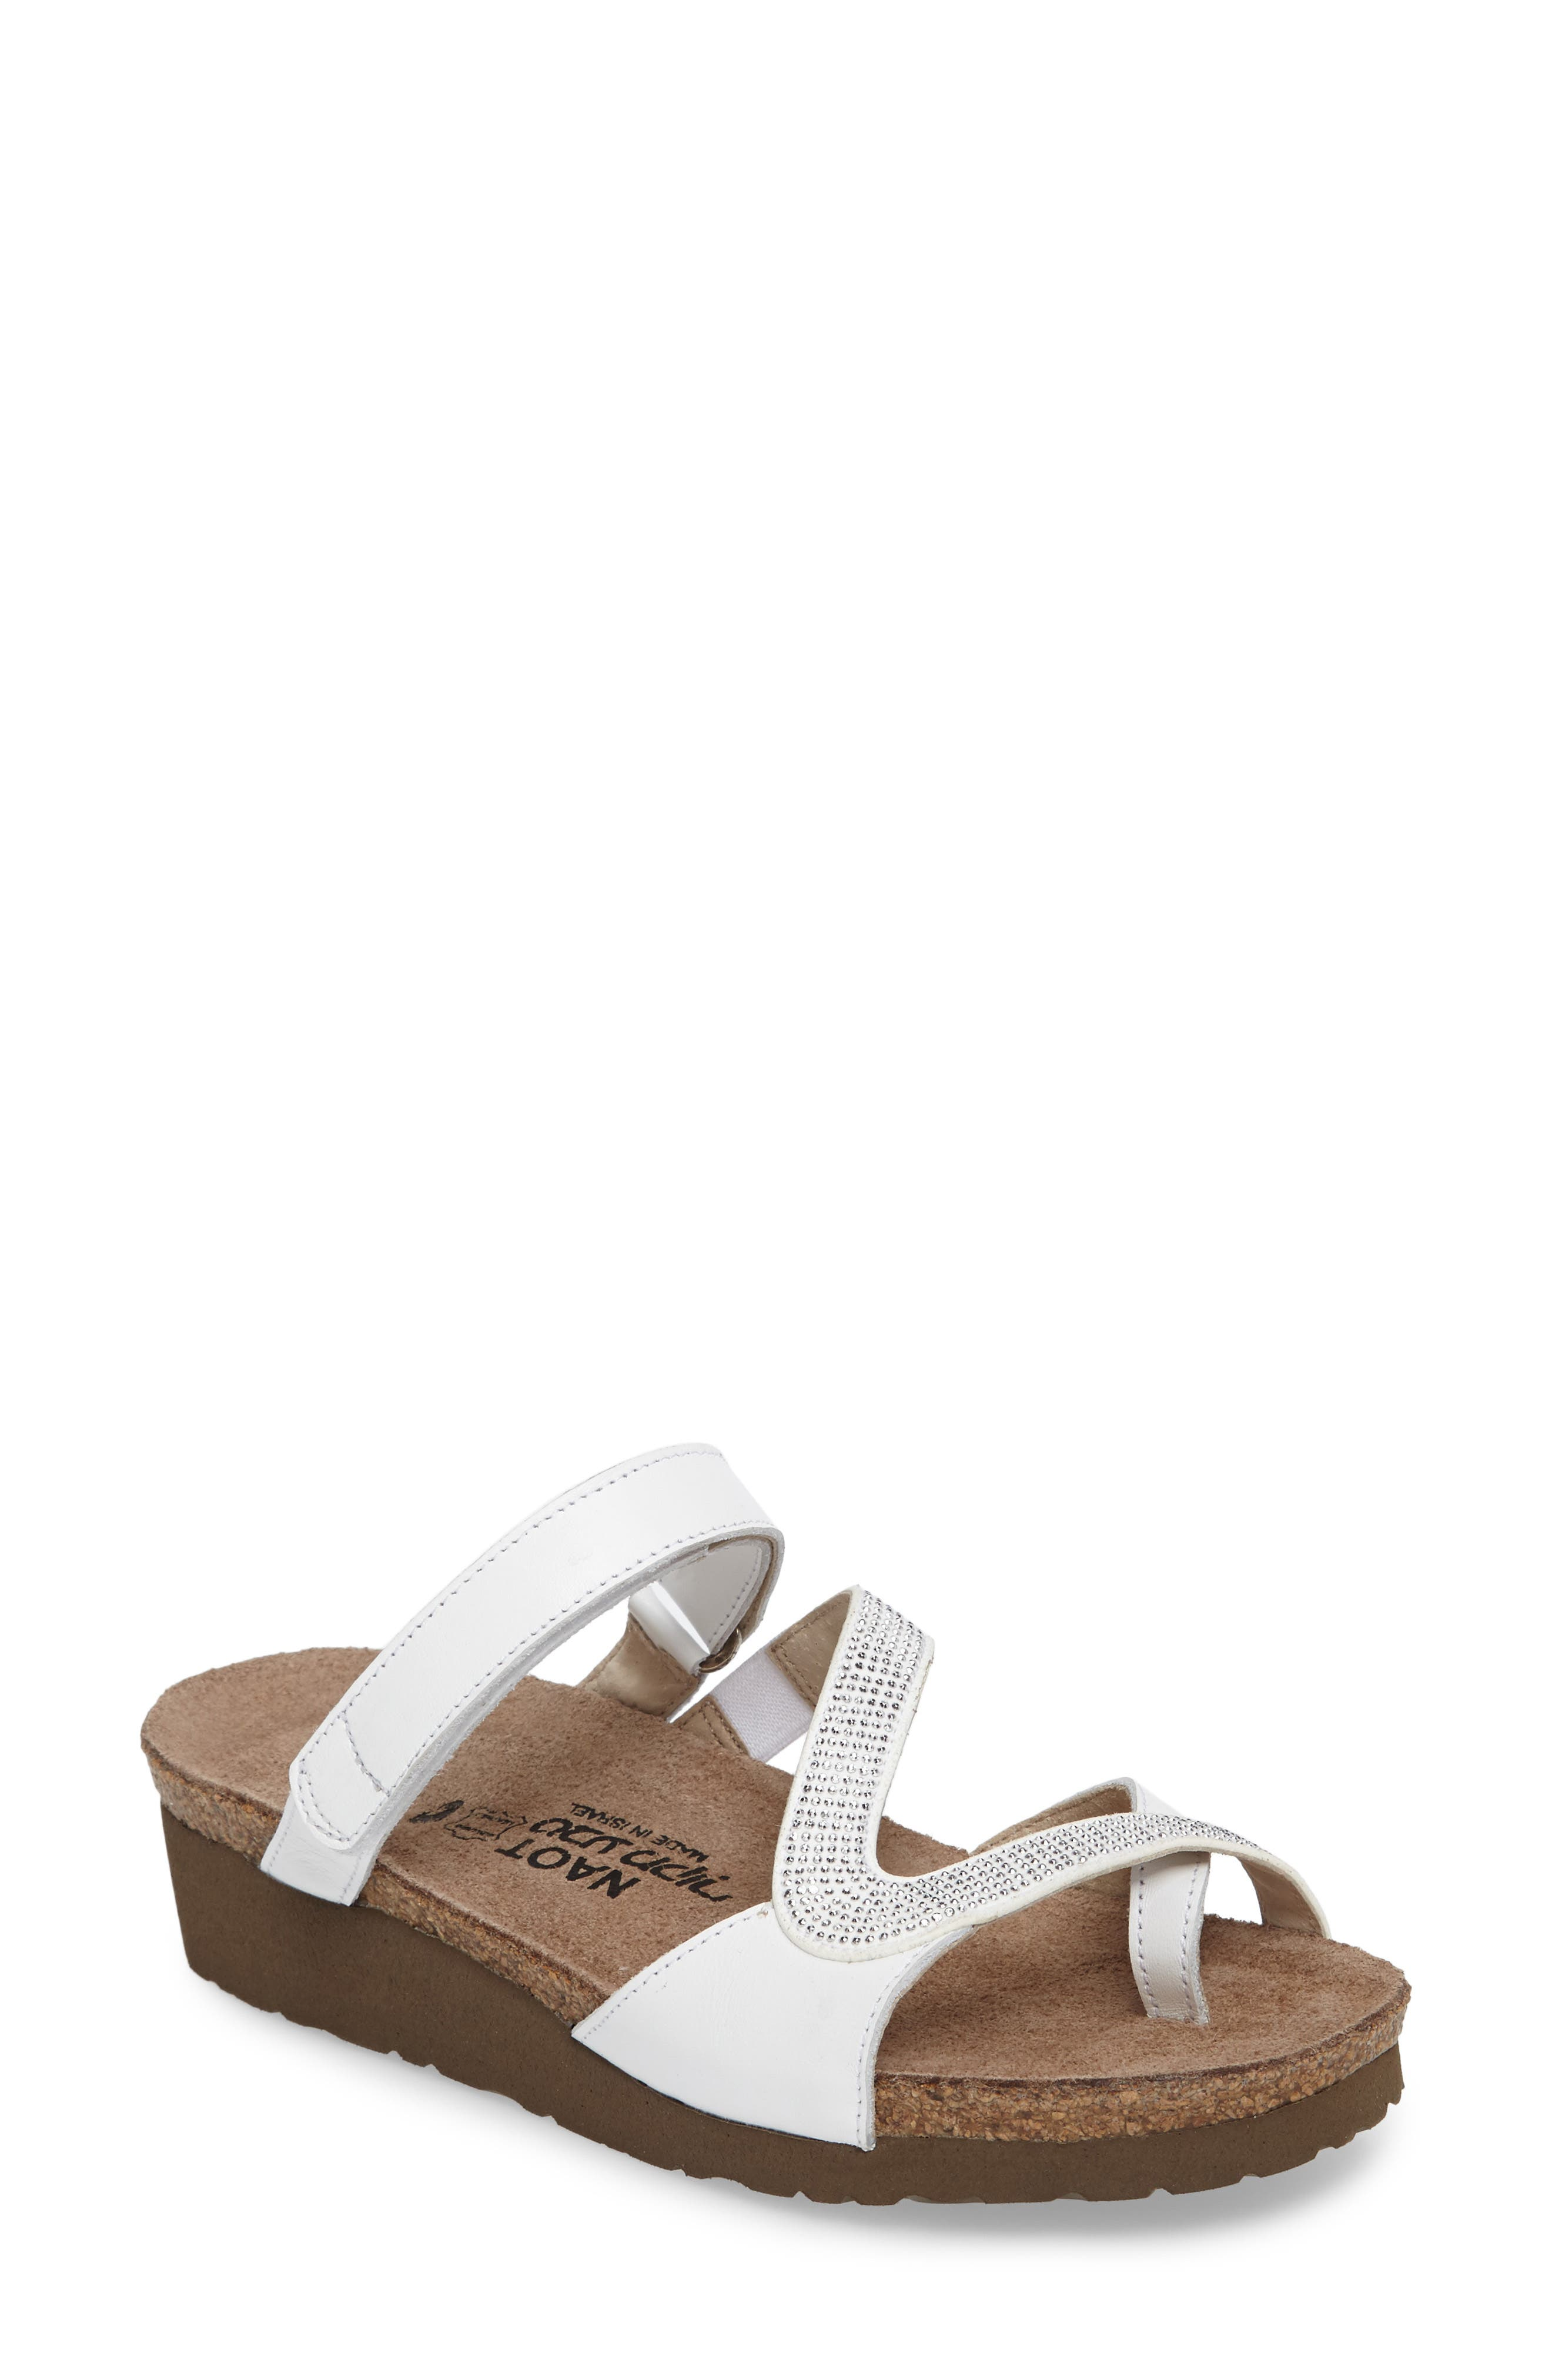 Giovanna Sandal,                         Main,                         color, White Leather